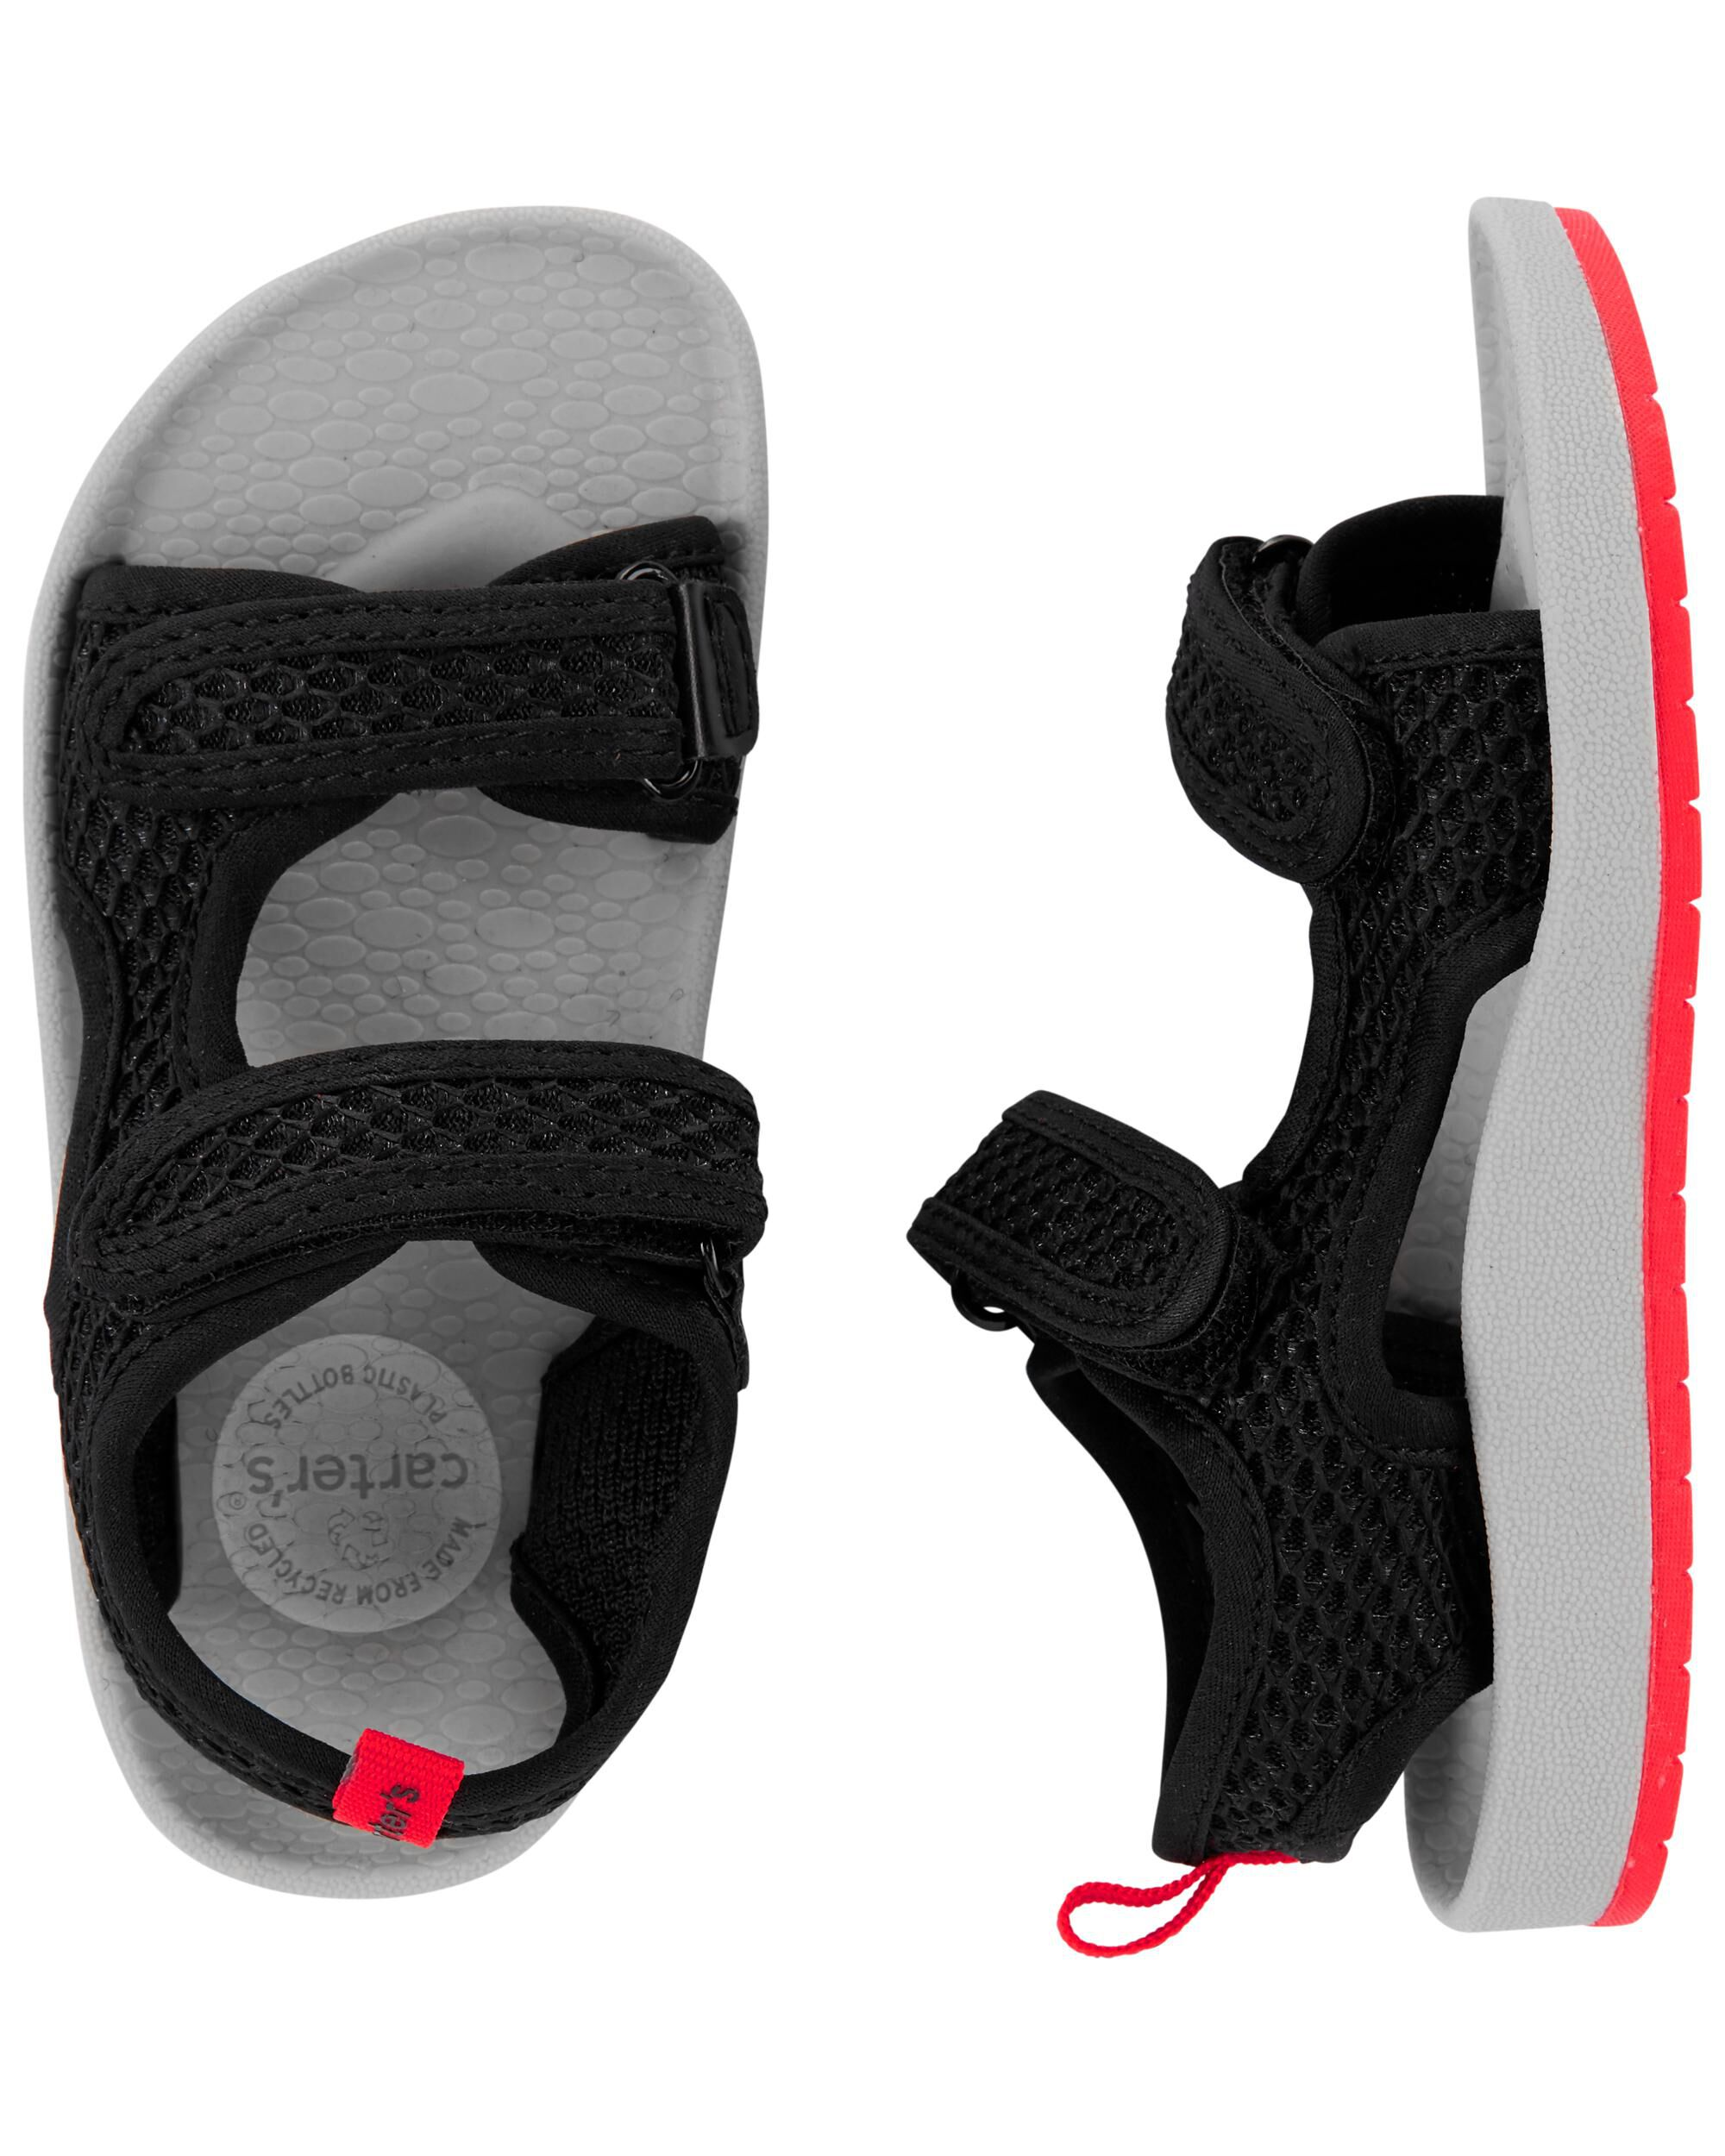 Carters Recycled Sandals